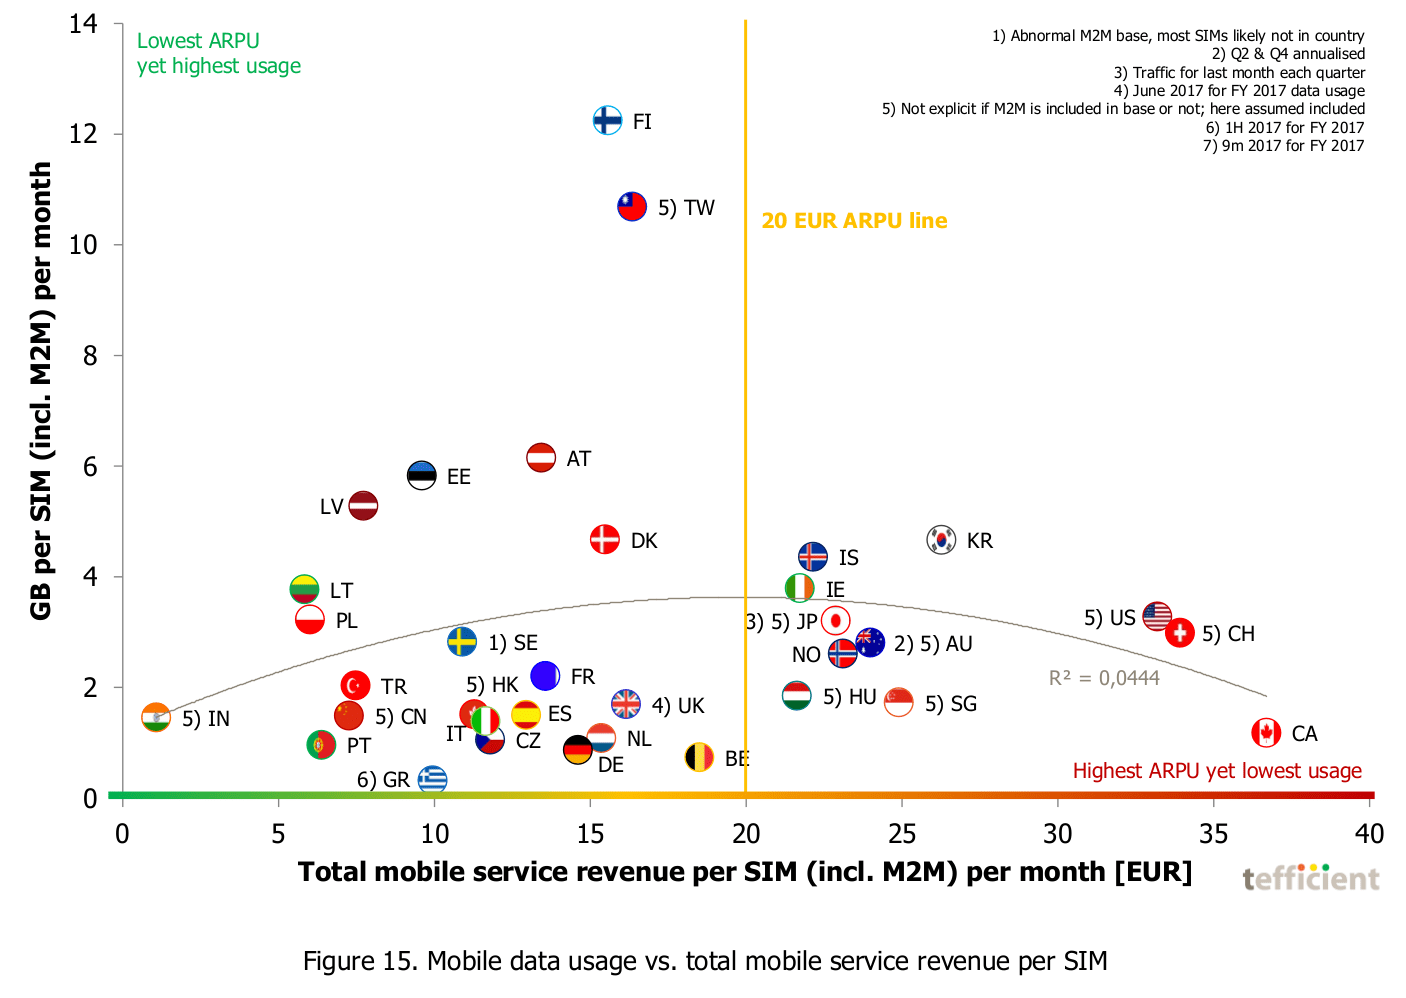 Figure 15. Mobile data usage vs. total mobile service revenue per SIM